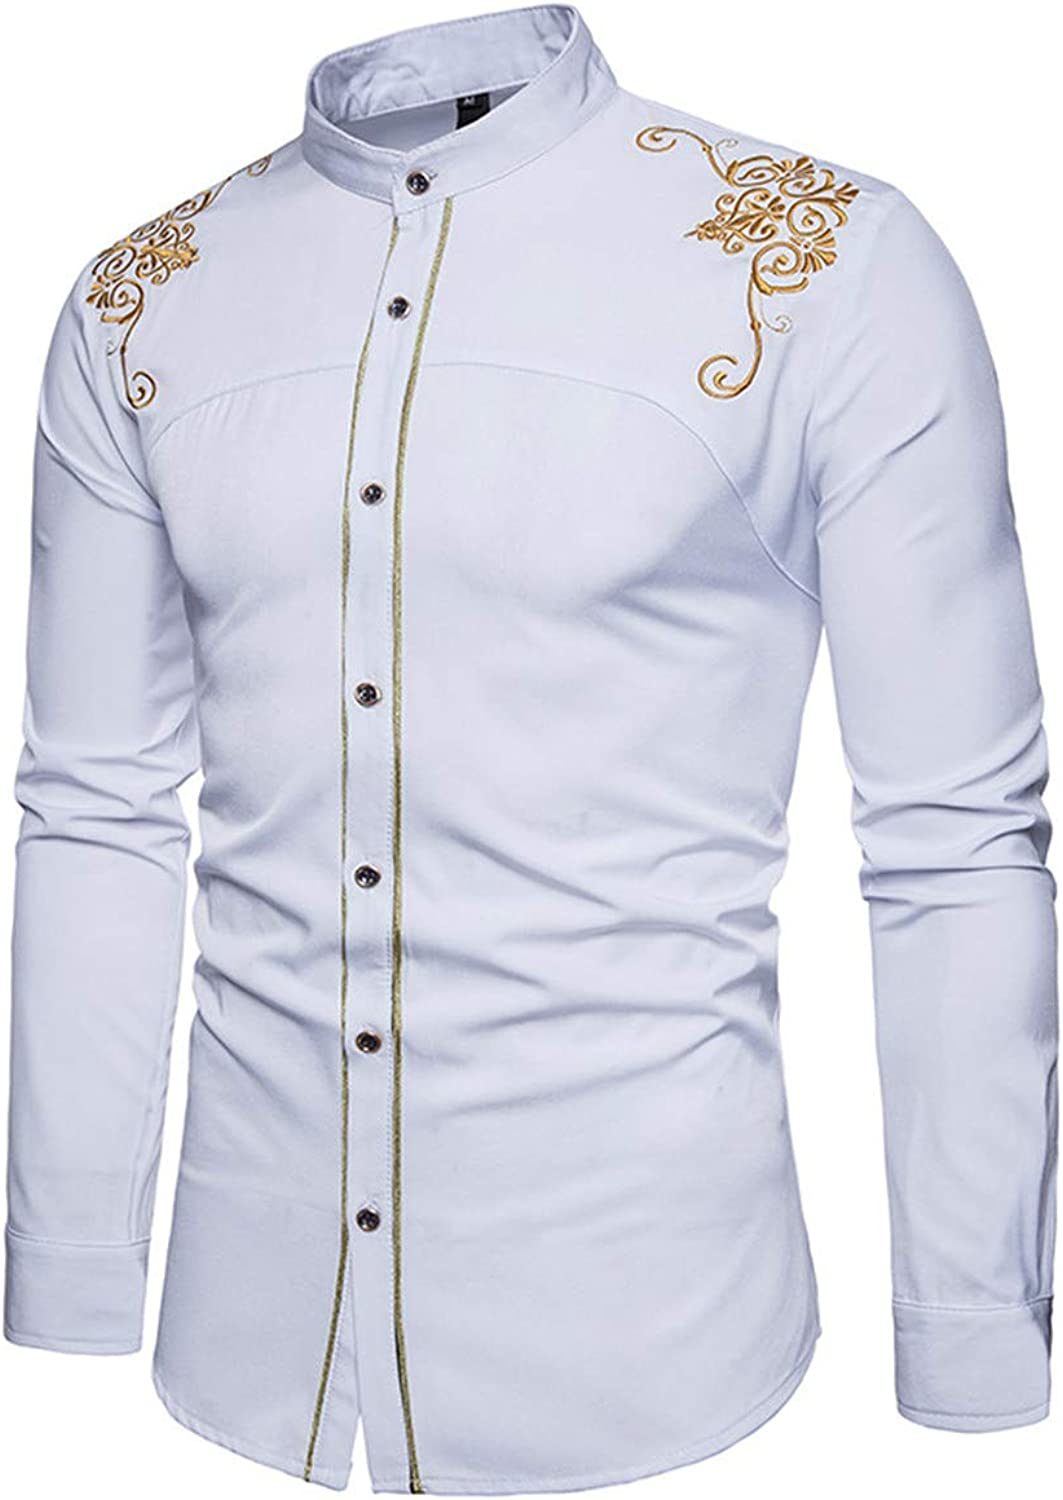 84357441f68 Hsumonre Men Embroidery Embroidery Embroidery Dress Shirt Long Sleeve Slim  Fit Casual Solid color Male Button Down Mandarin Collar Shirts a50c87